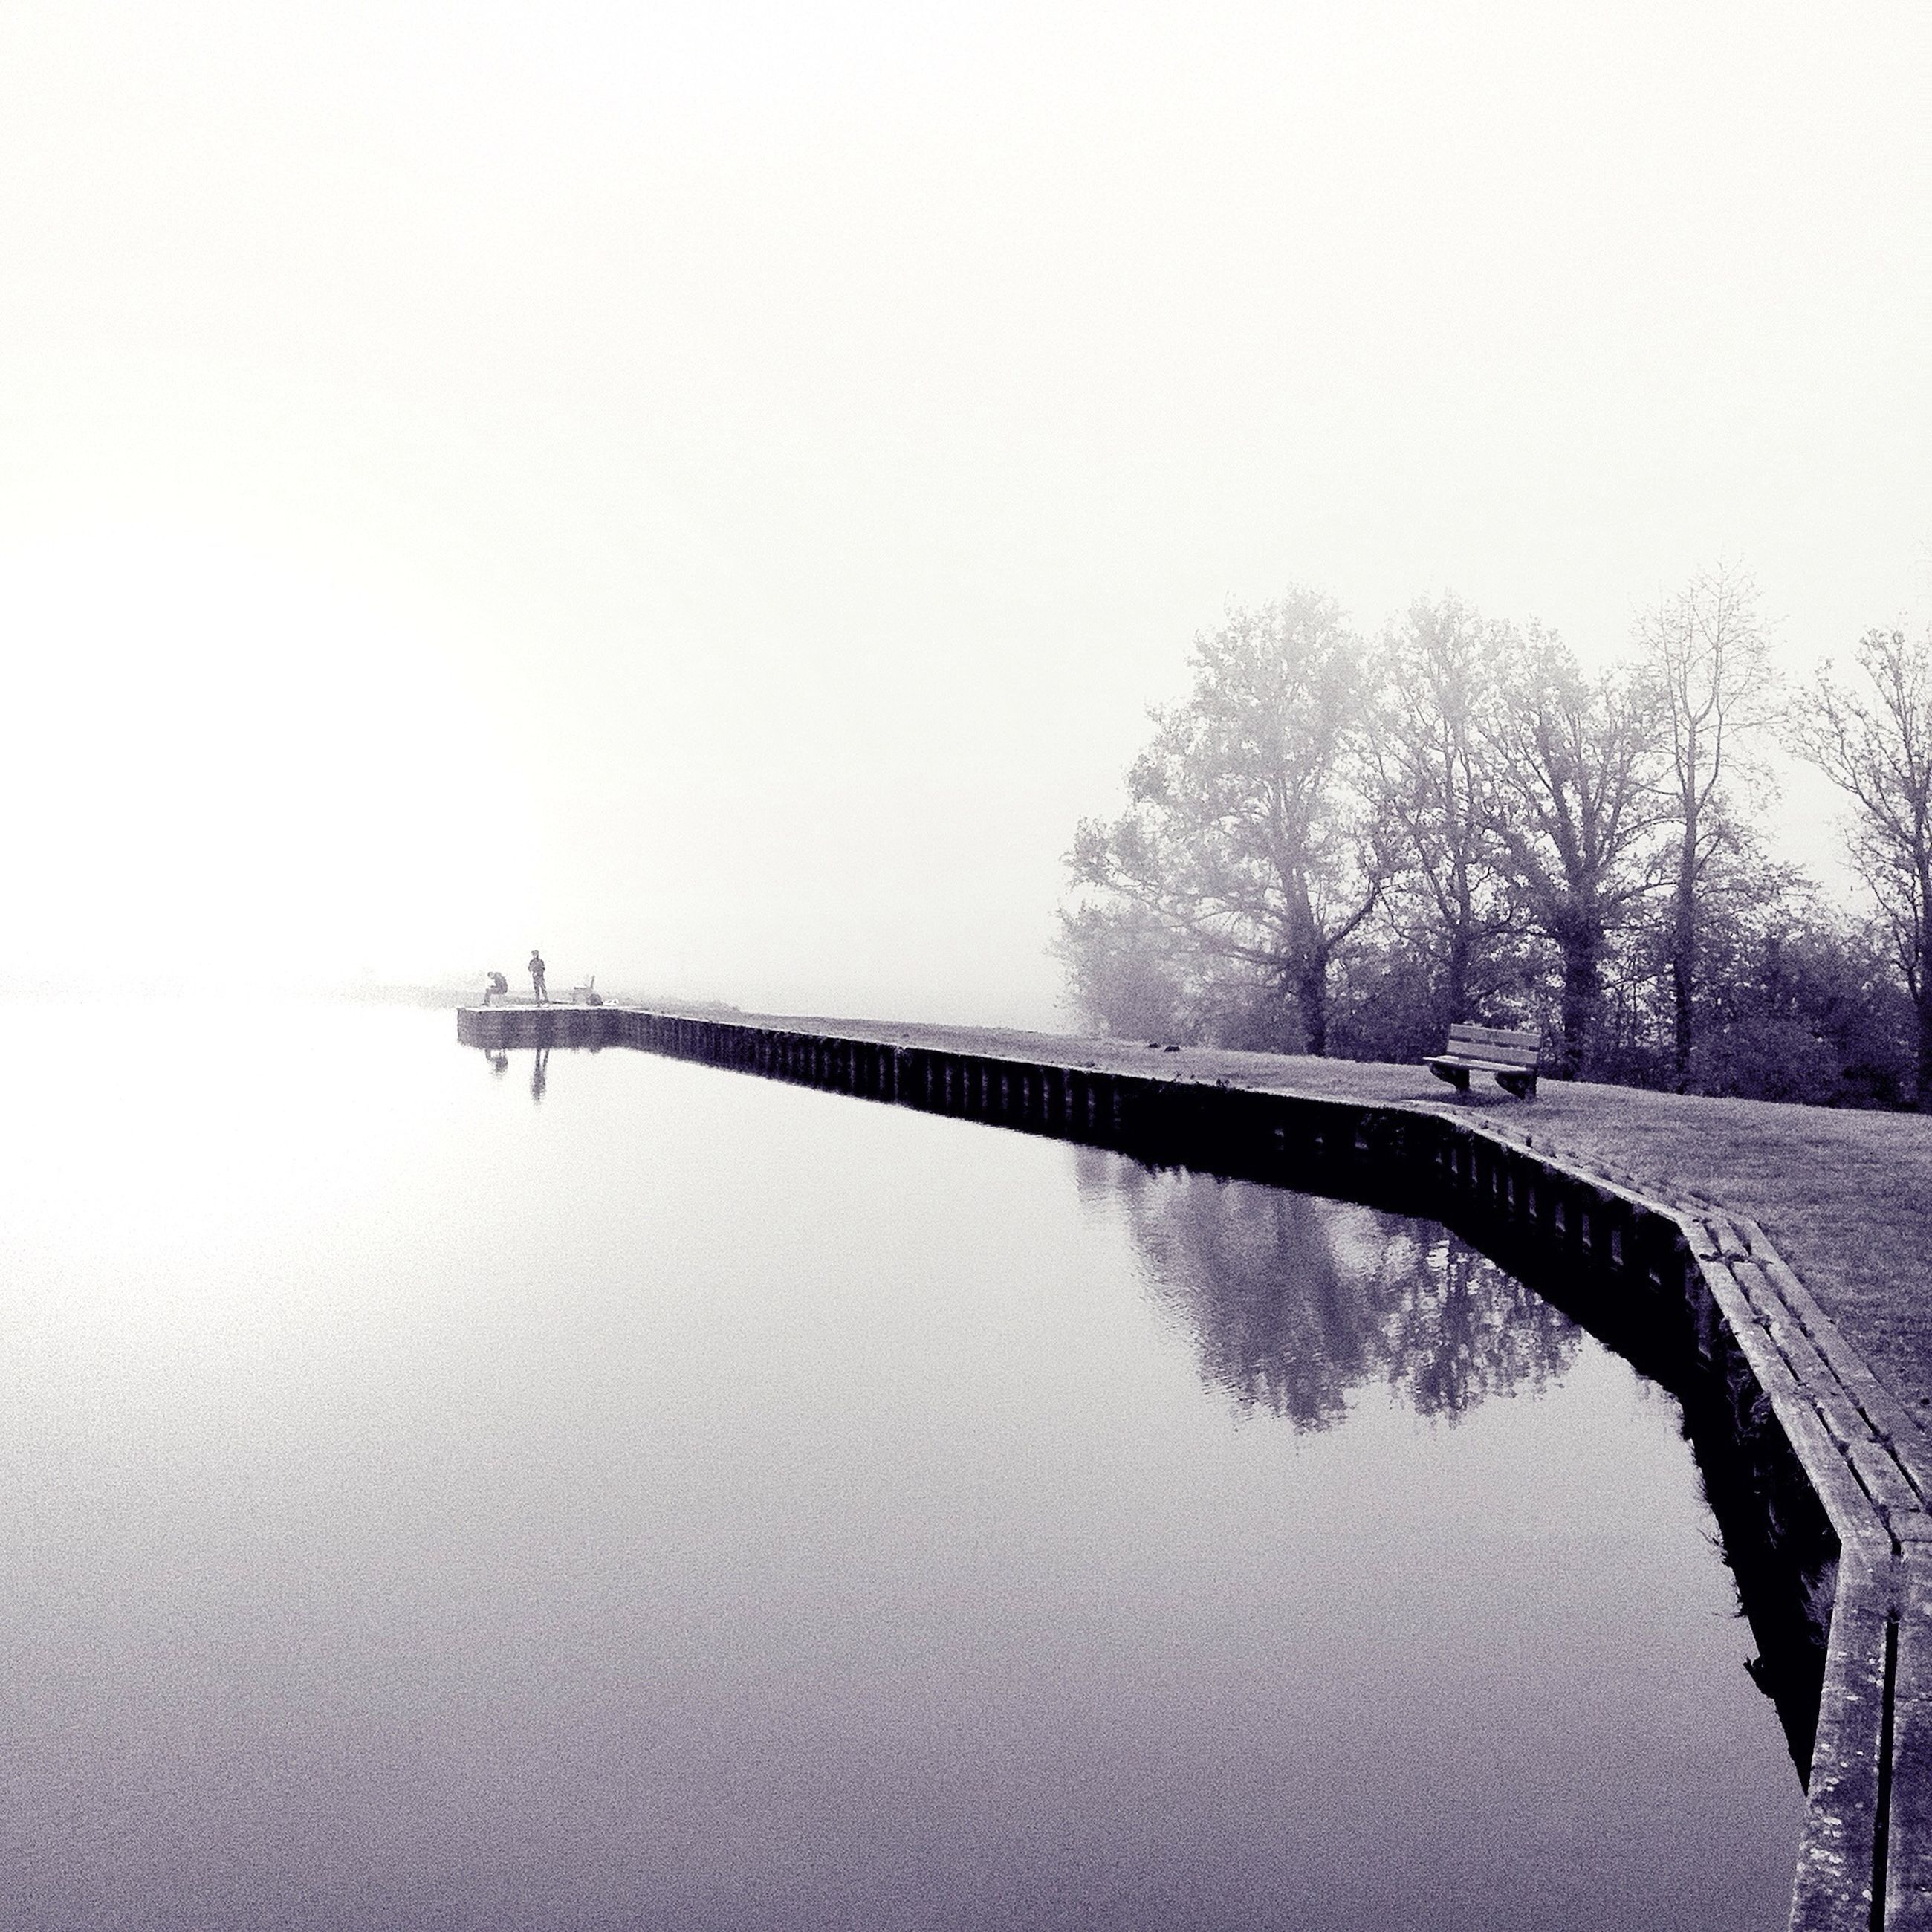 clear sky, tree, connection, water, copy space, built structure, bridge - man made structure, architecture, tranquility, river, nature, tranquil scene, bare tree, waterfront, foggy, outdoors, day, no people, sky